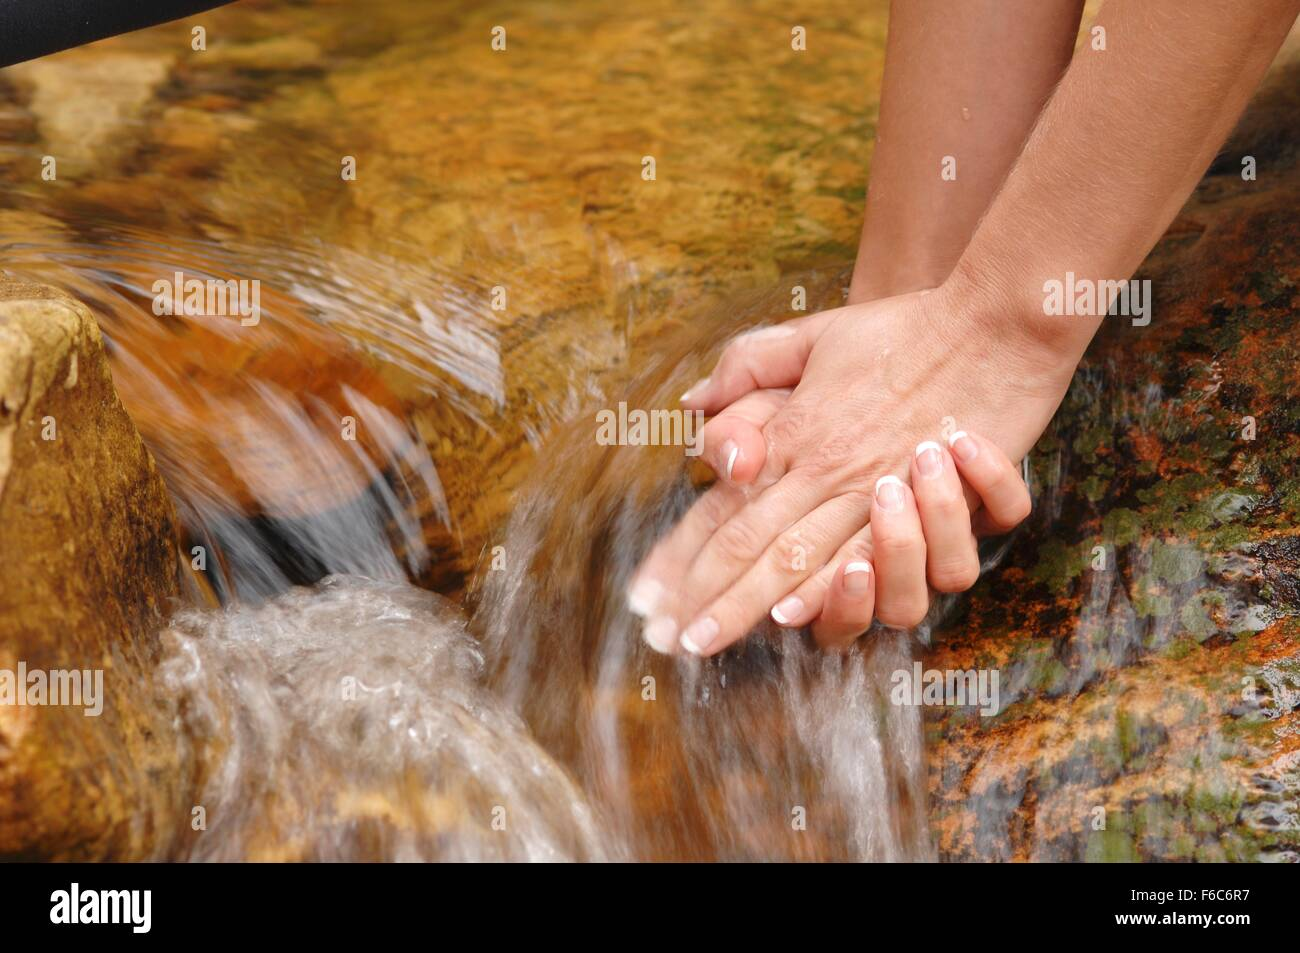 A woman holding her hands under running water - Stock Image